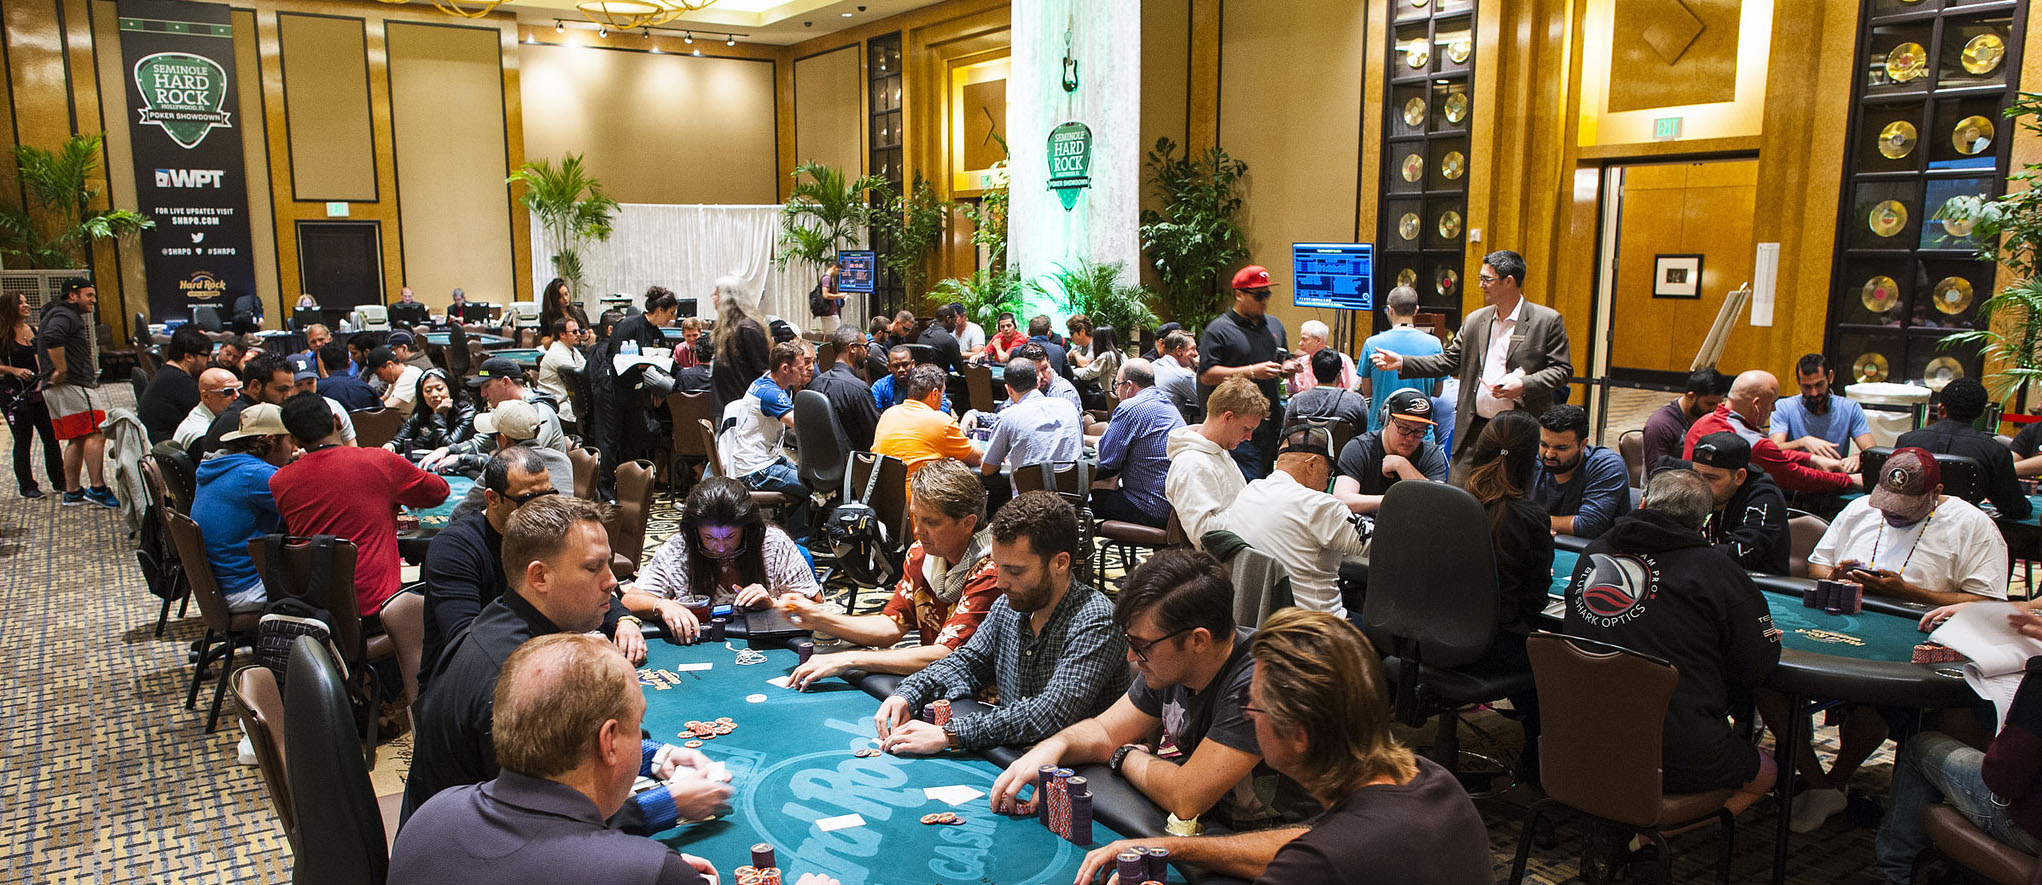 Seminole hard rock poker room hours governor of poker 5 free download